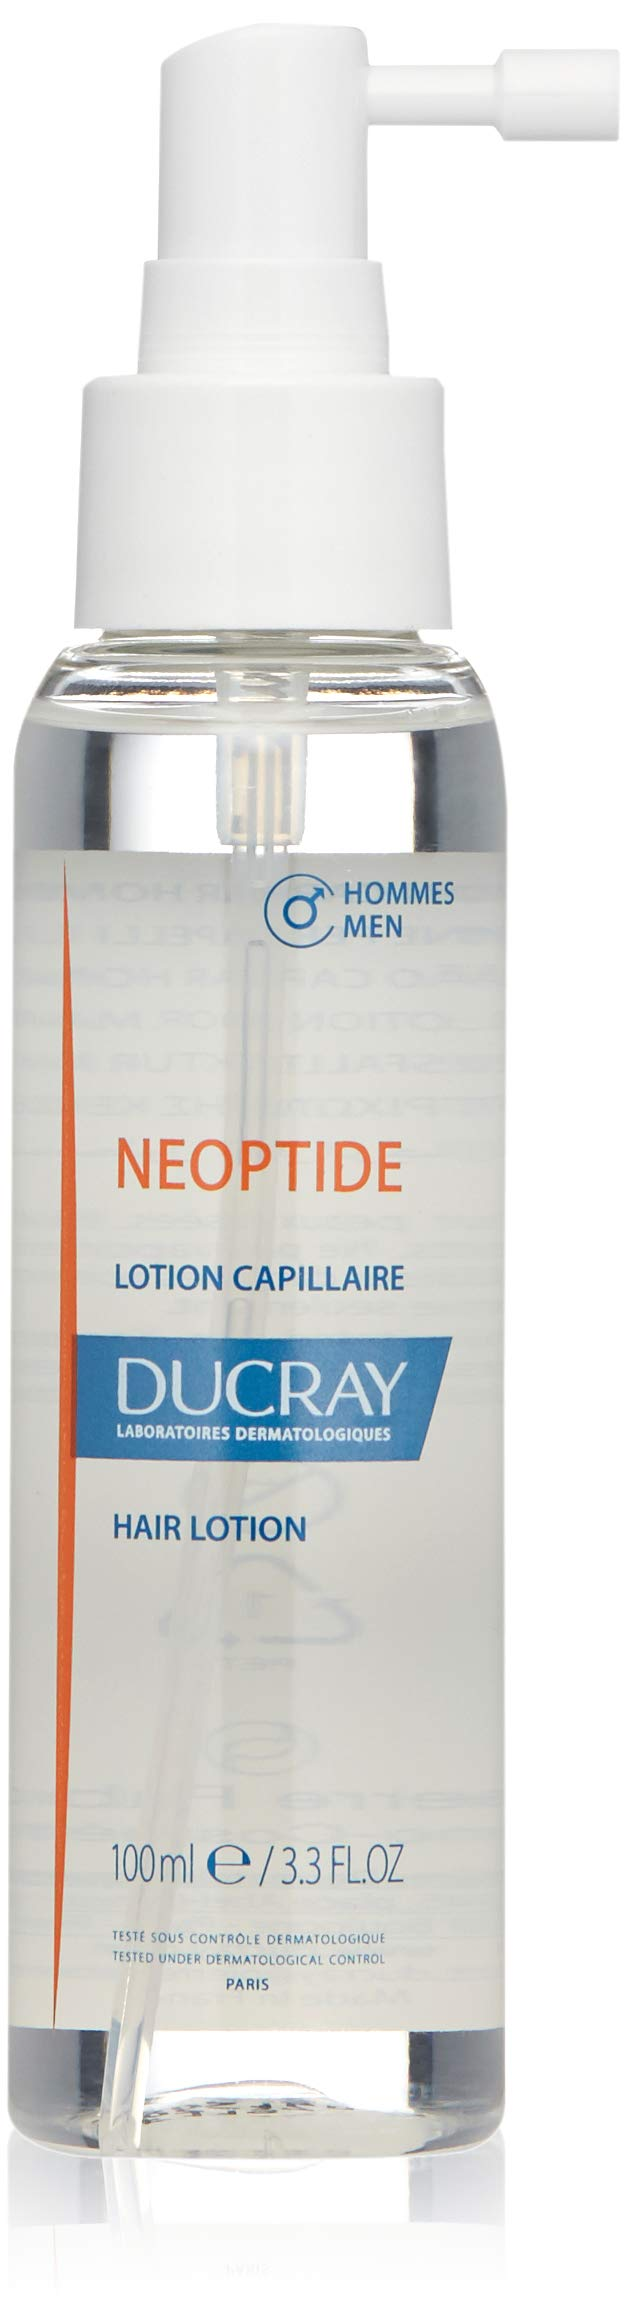 Ducray Neoptide Hair Lotion MEN, Chronic, Progressive Thinning Hair Treatment Spray, Reduces Appereance of Hair Loss, 3 x  1 oz. by Ducray